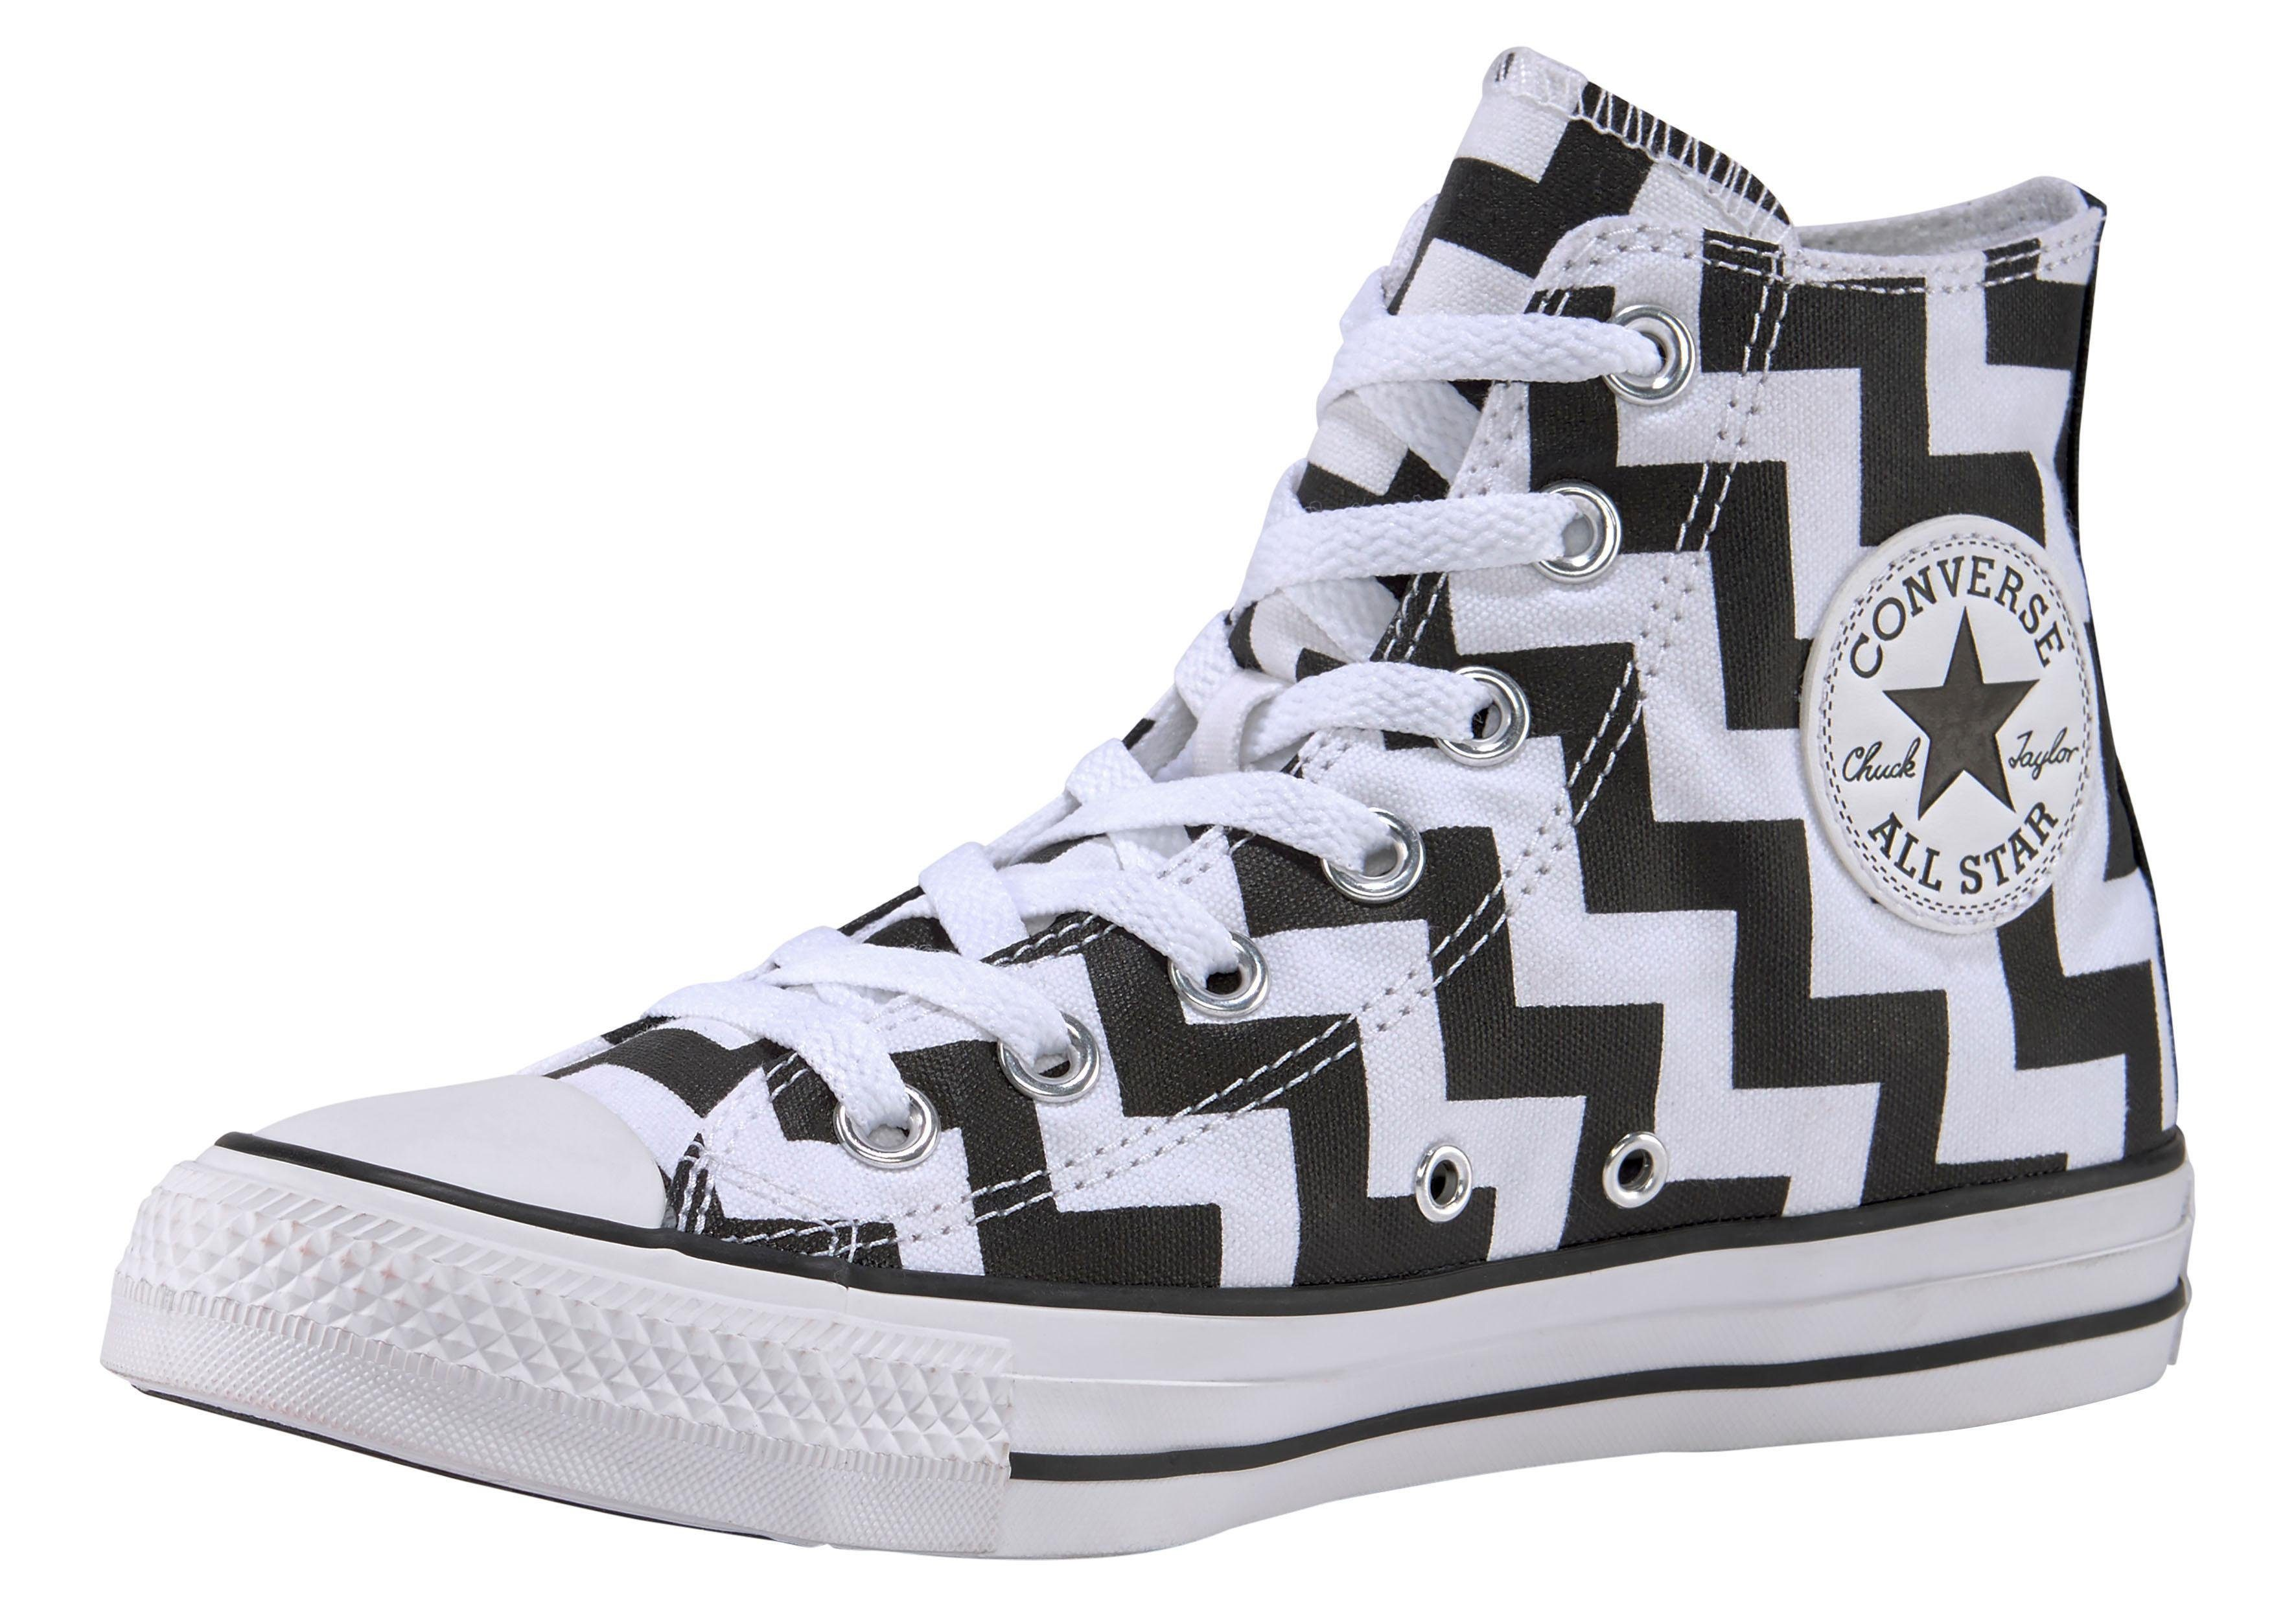 Converse »Chuck Taylor All Star GLAM DUNK Hi« Sneaker online kaufen | OTTO